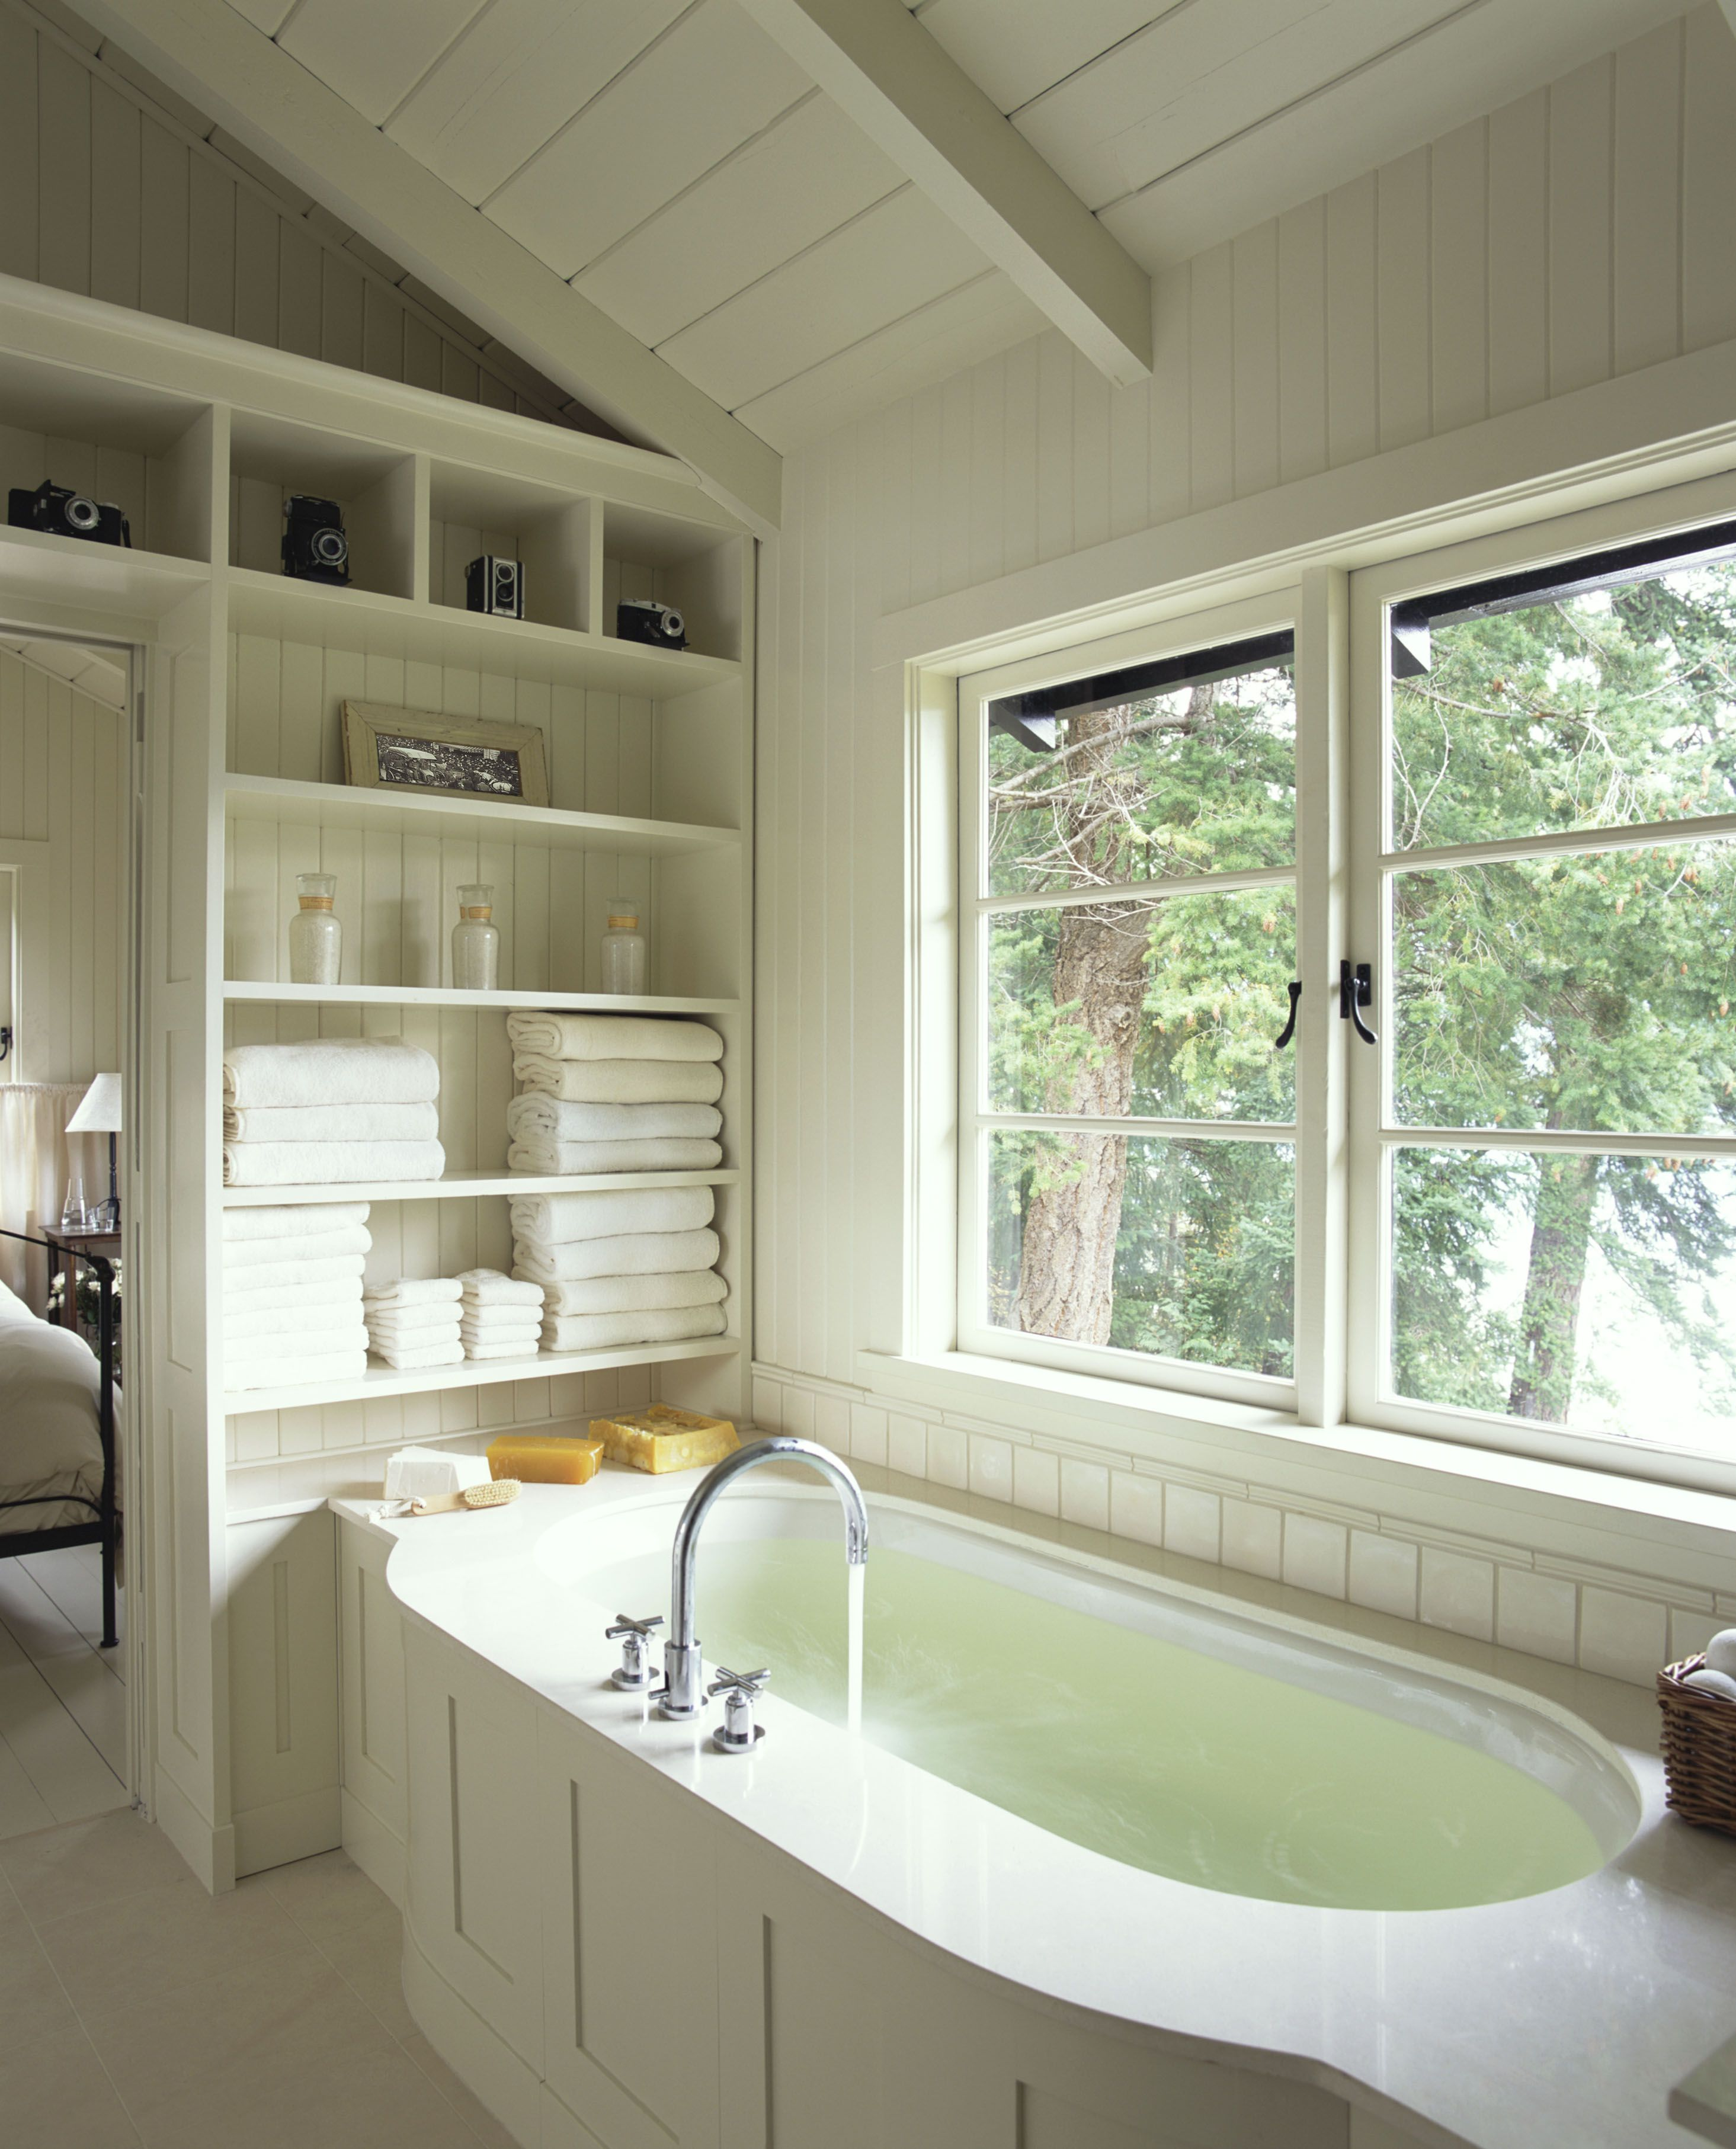 Reference Guide To Common Tubs